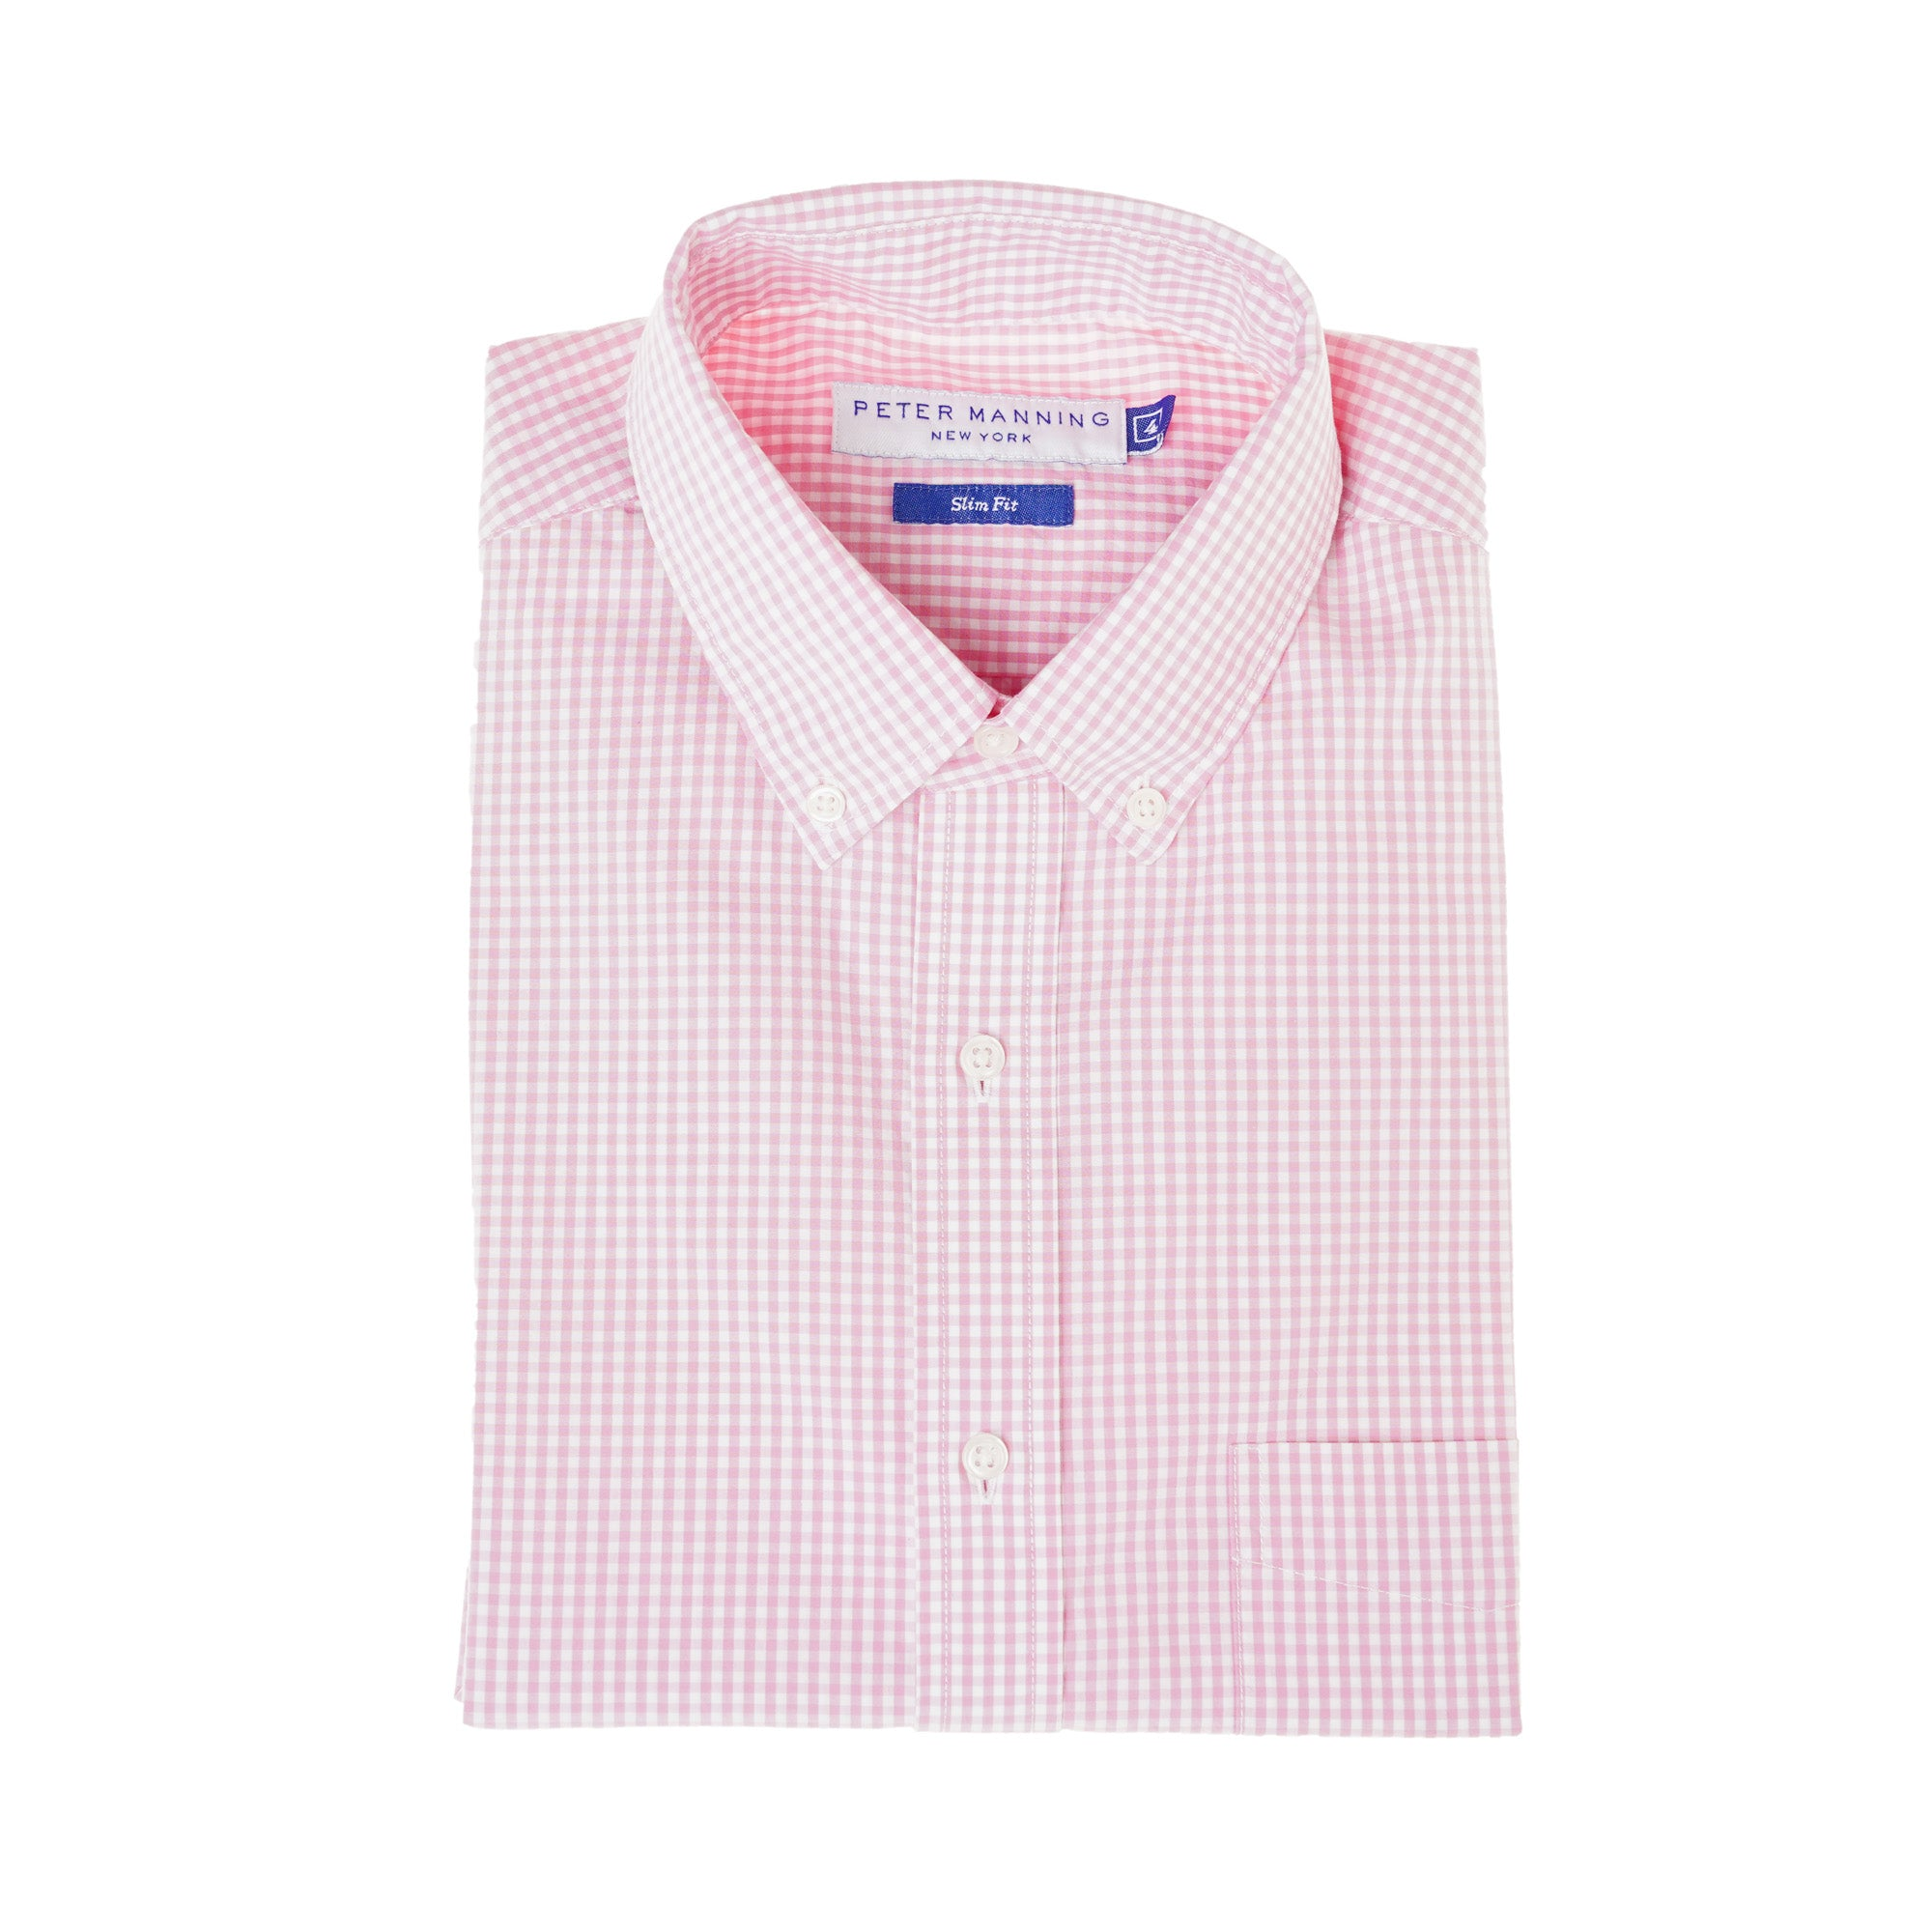 Everyday Shirts Slim Fit - Pink Gingham